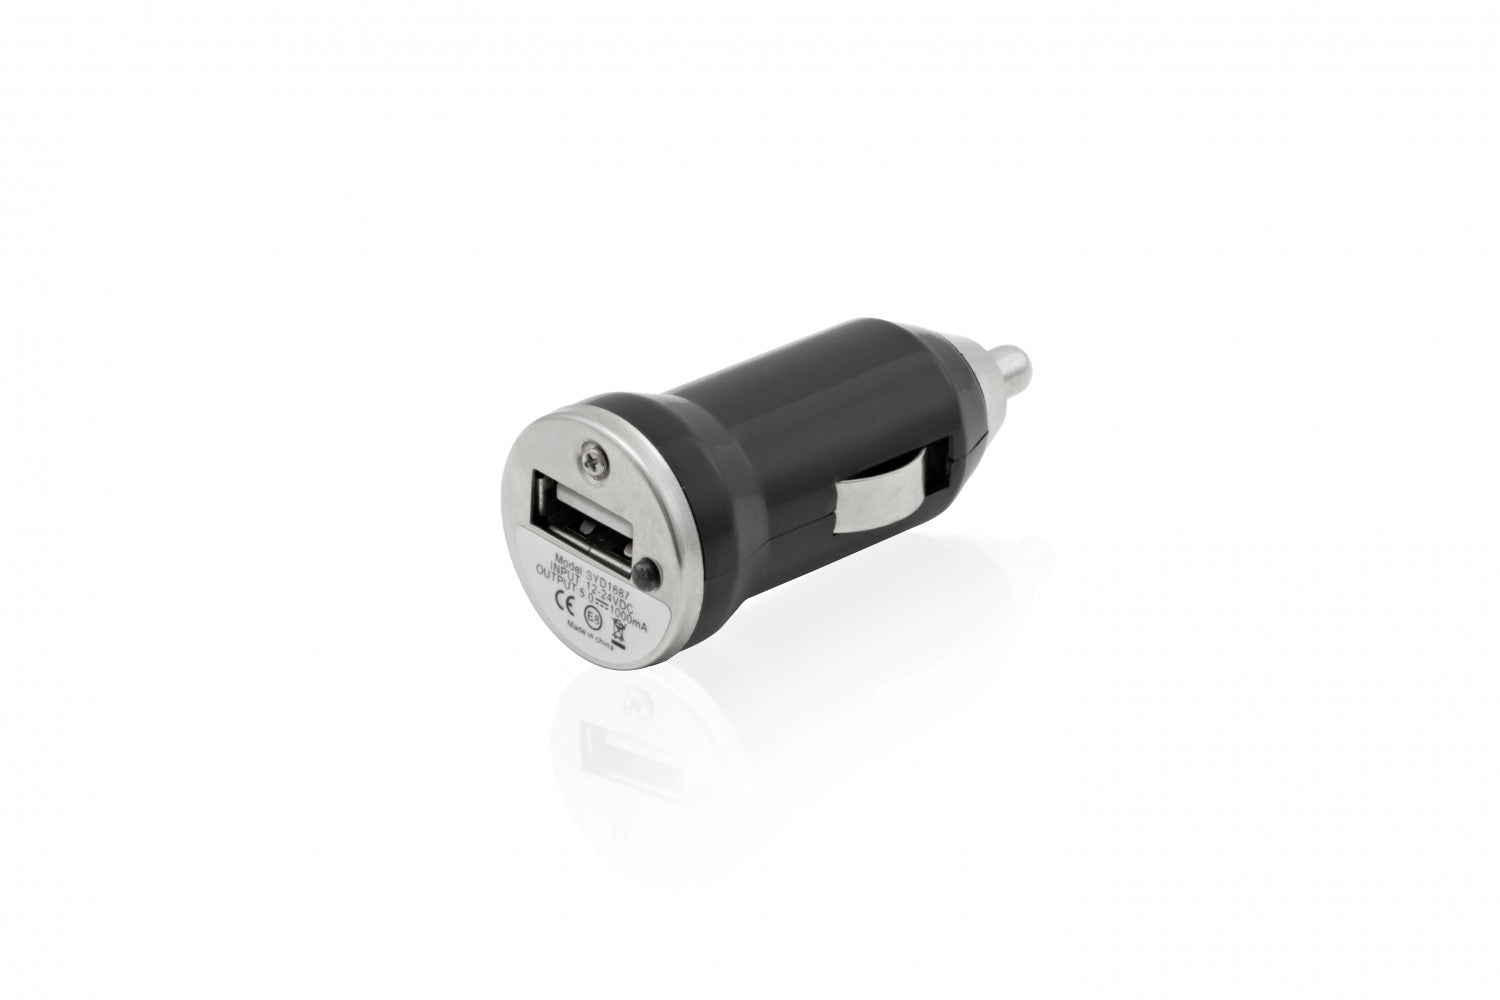 Chargeur voiture USB - Smarty Q